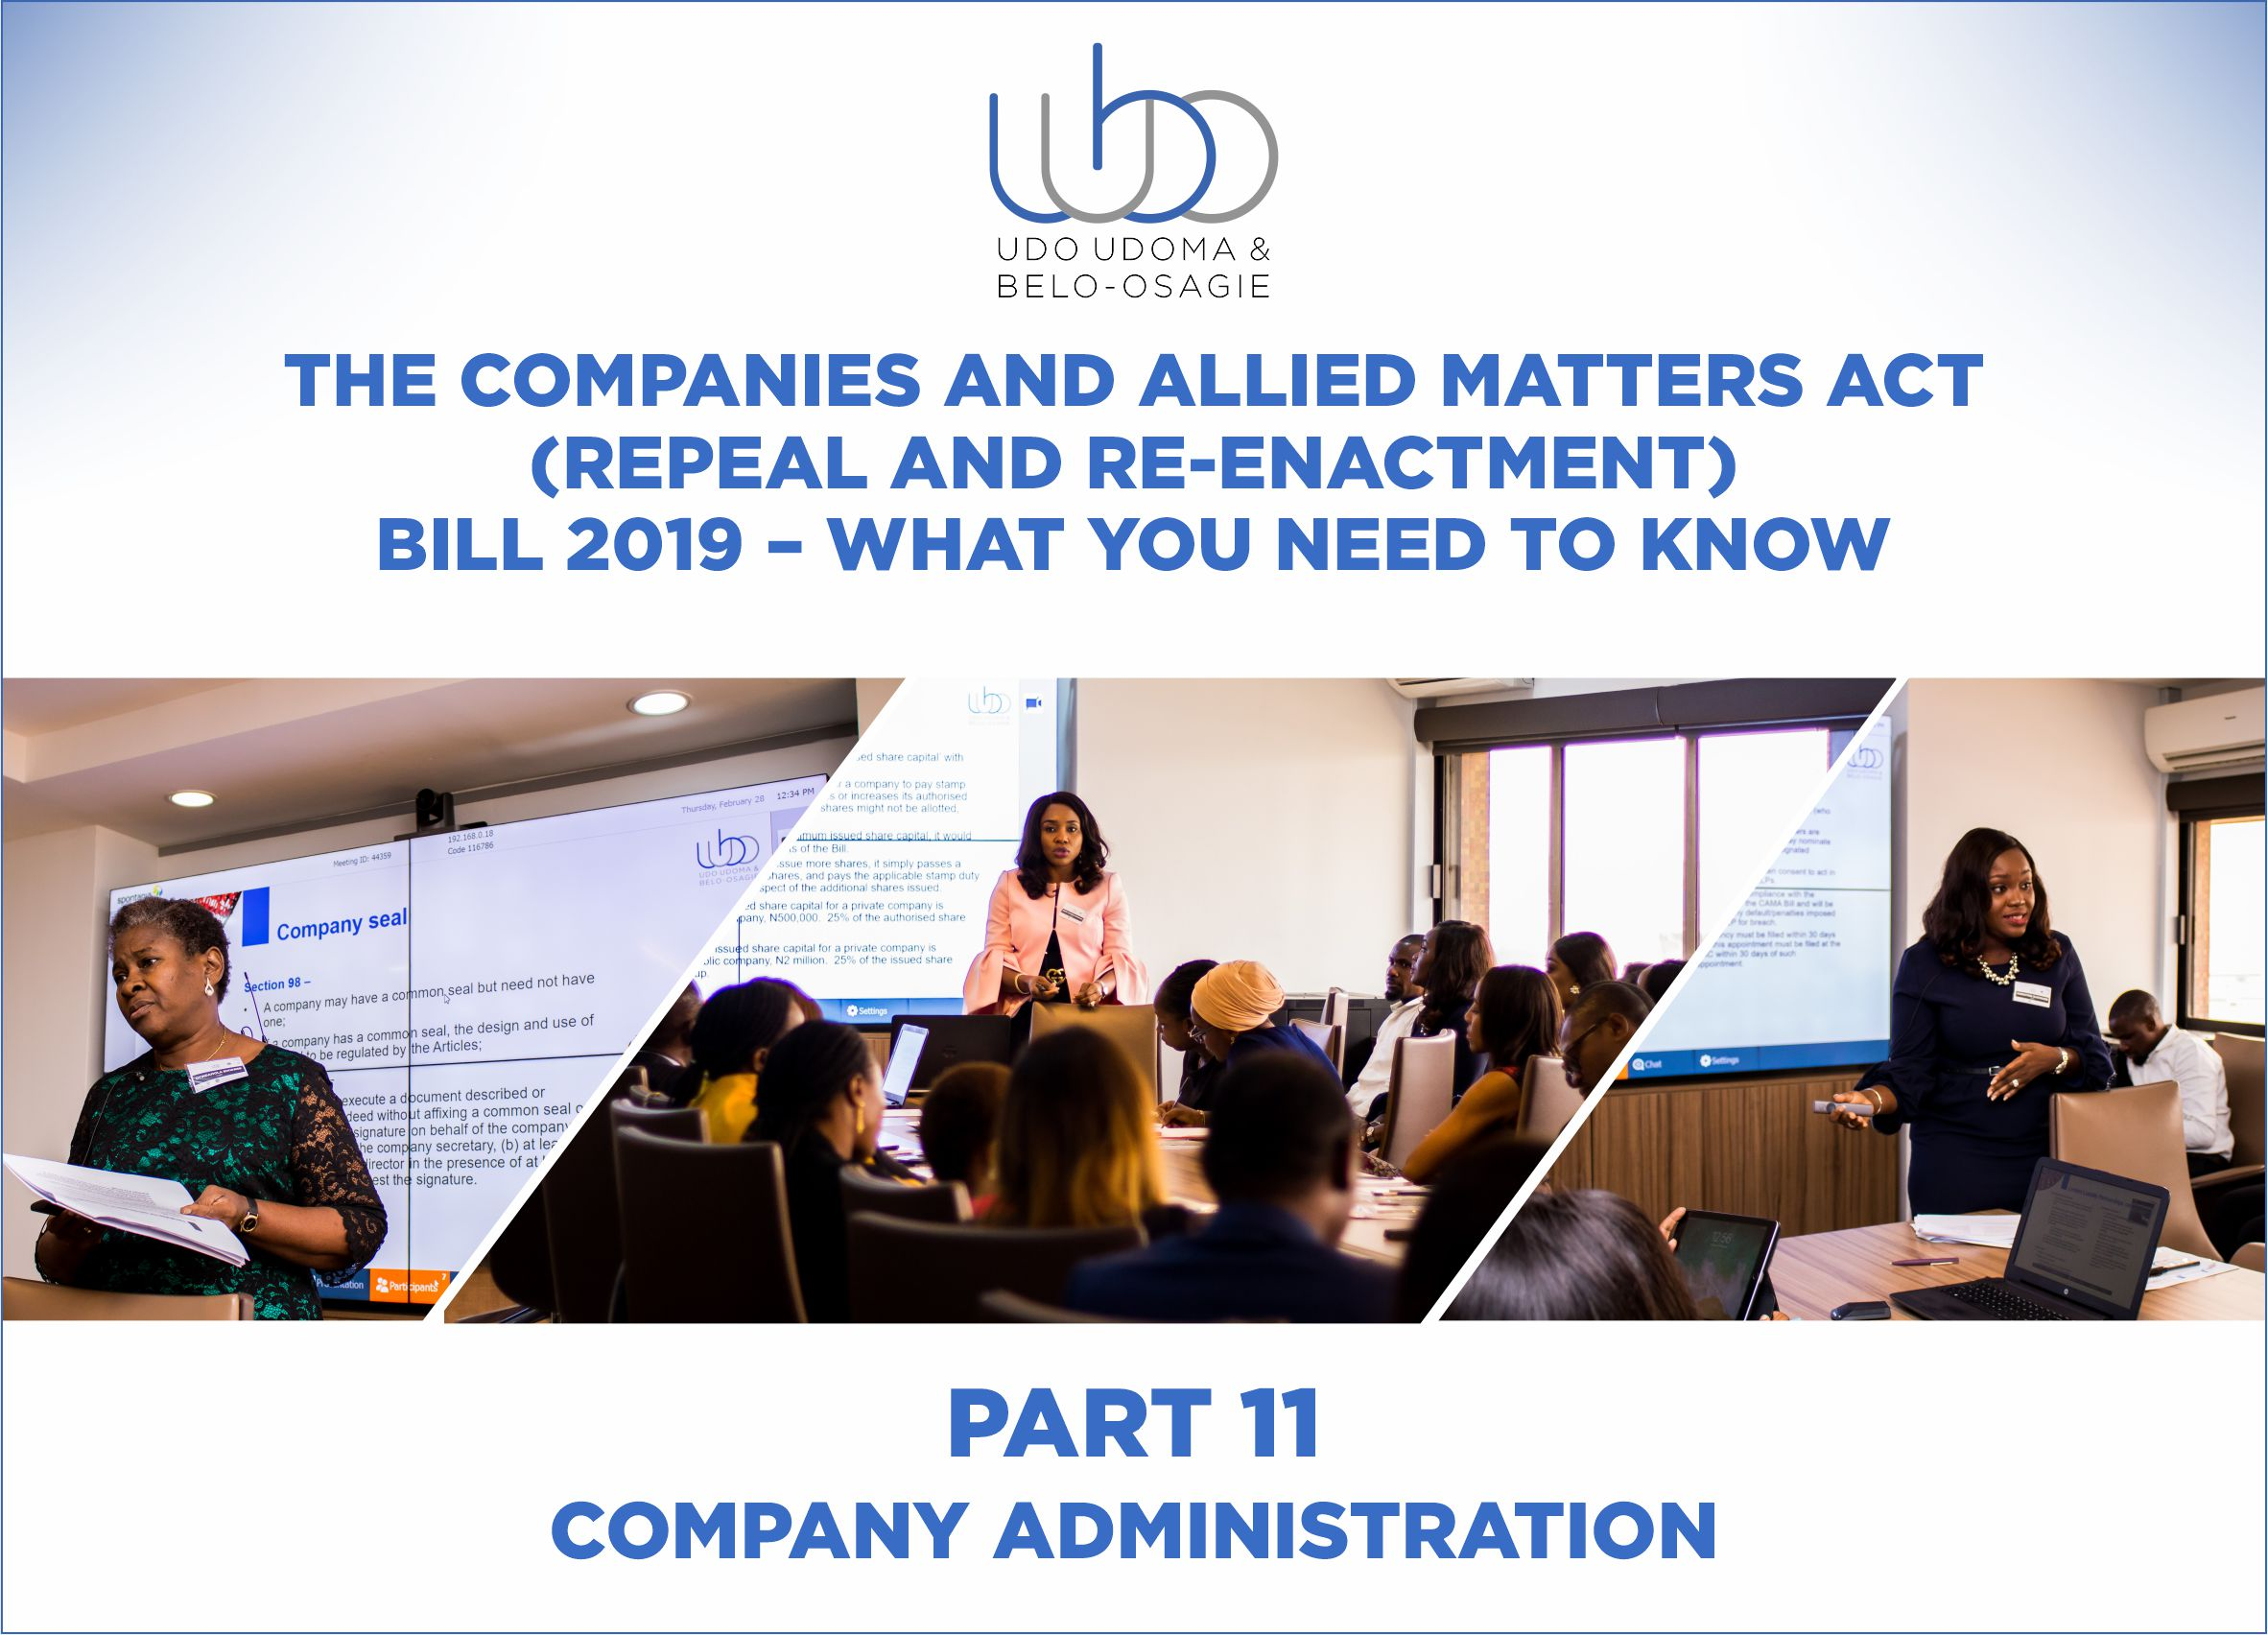 THE COMPANIES AND ALLIED MATTERS (REPEAL AND RE-ENACTMENT BILL) 2018 – PART 11